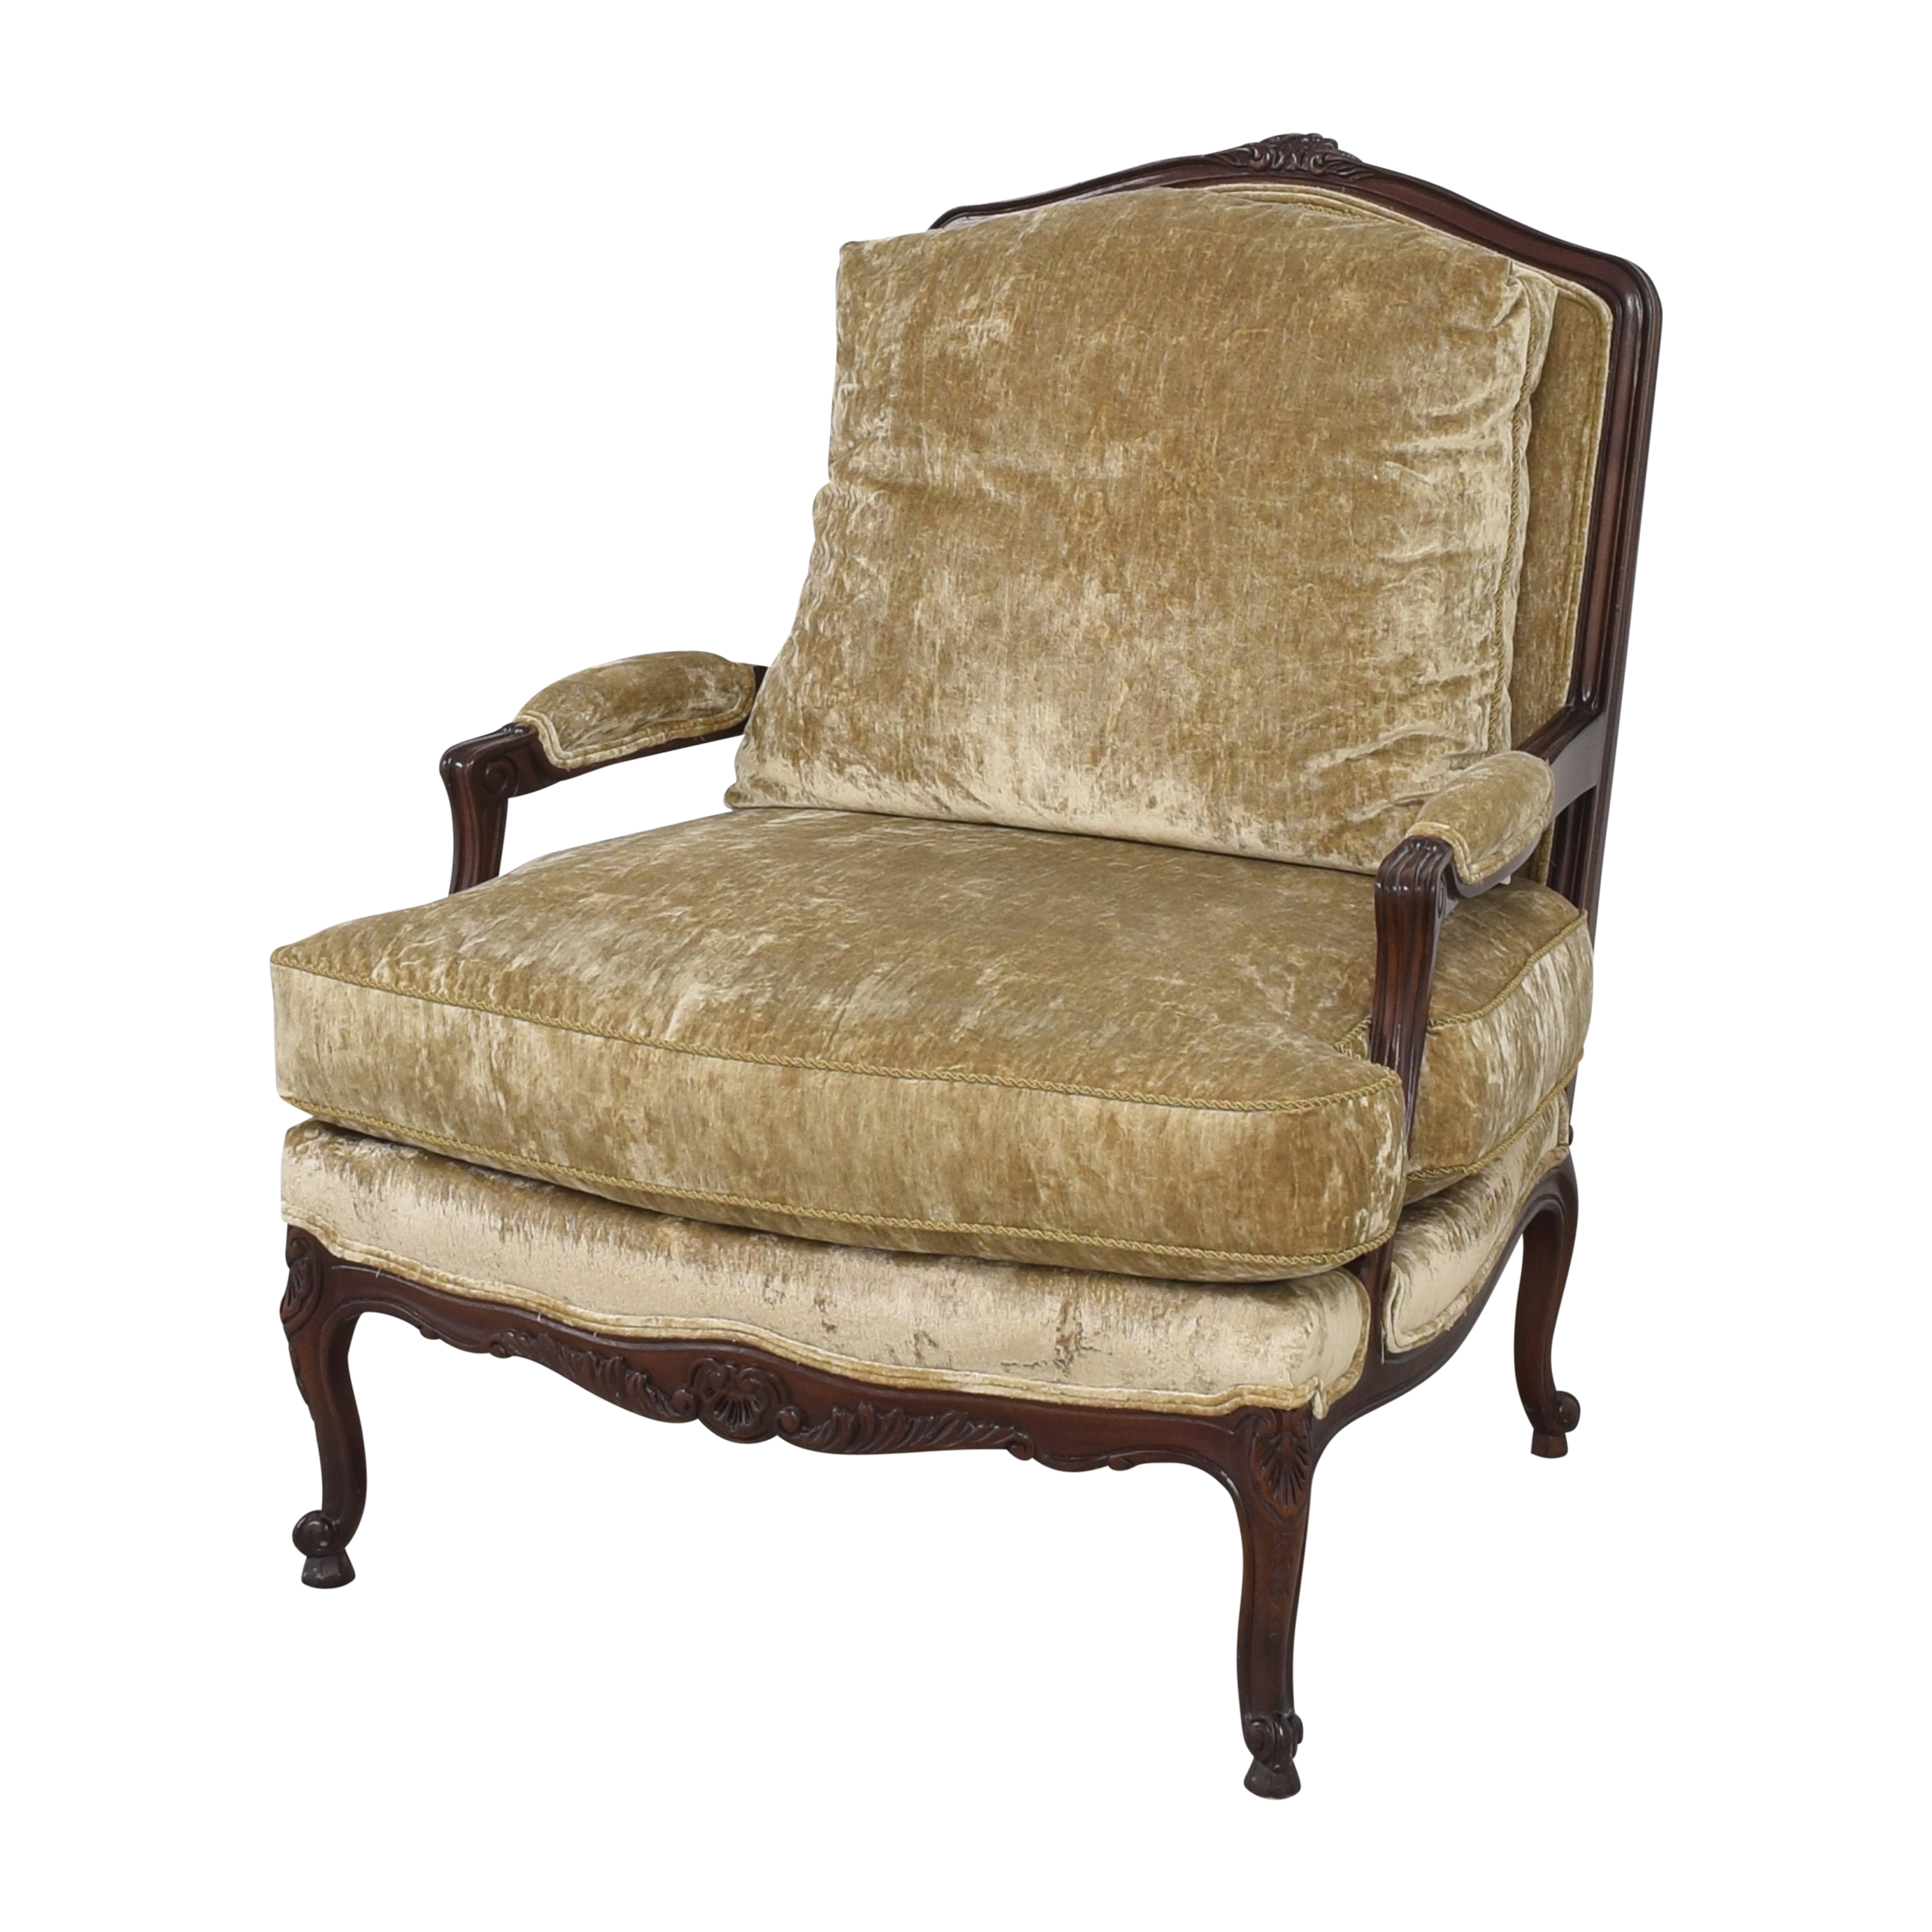 buy Sherrill Furniture Sherrill Custom Fauteuil Accent Chair online